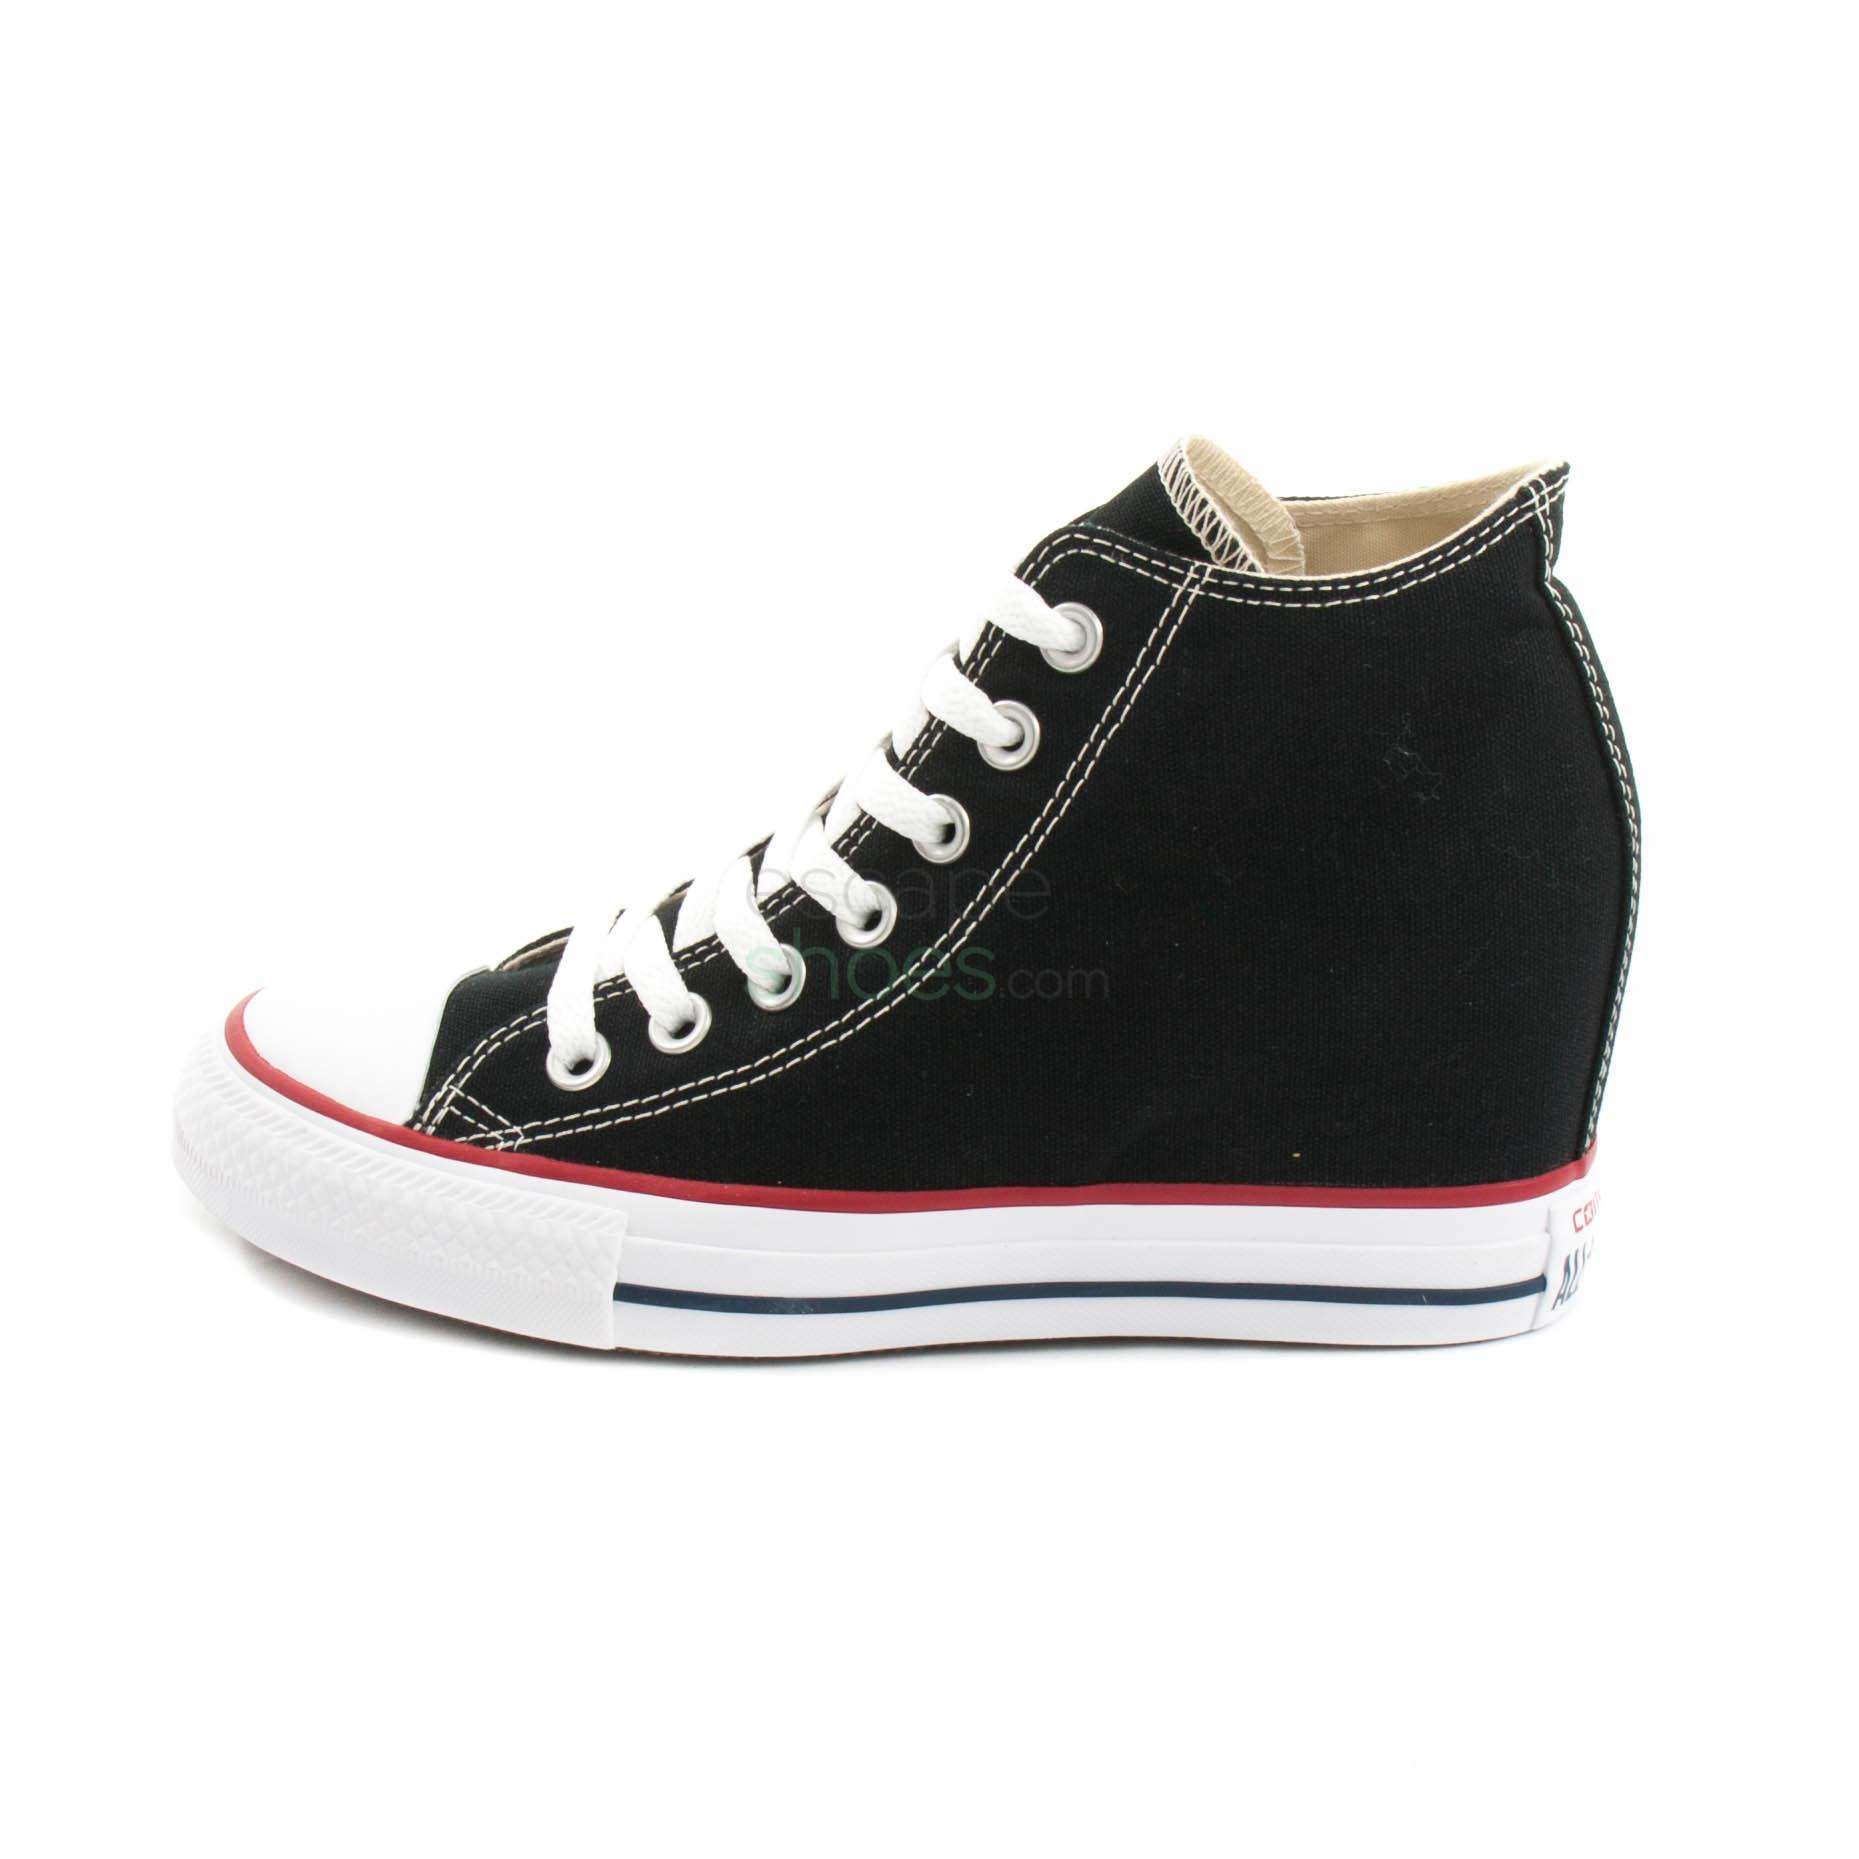 Sneakers CONVERSE Chuck Taylor All Star Lux 547198C 001 Mid Black